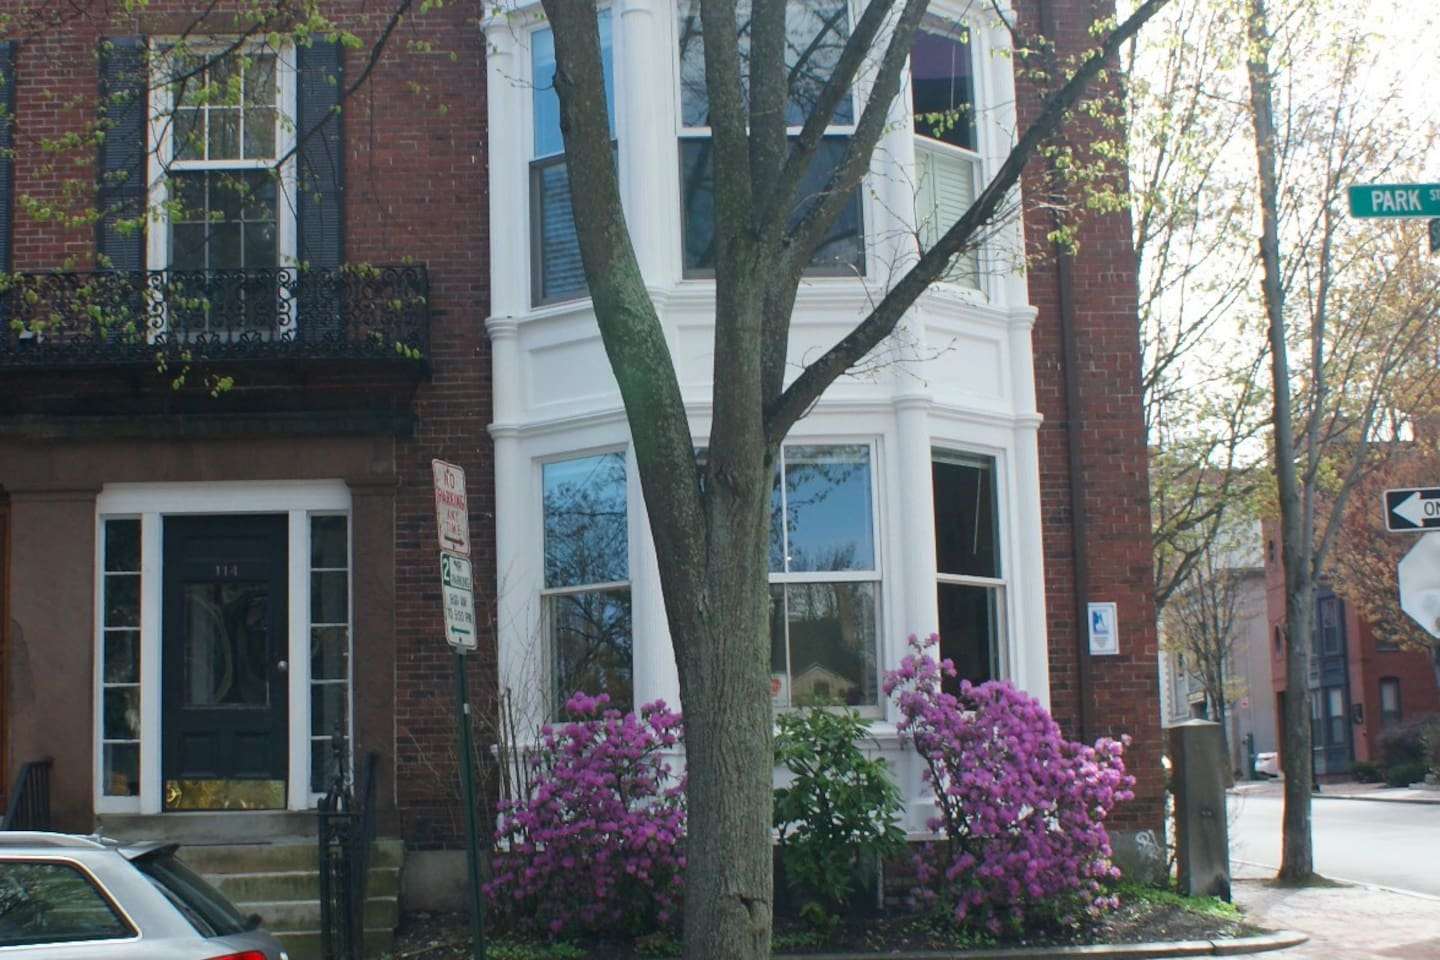 Row house apartment in Portland's historic district